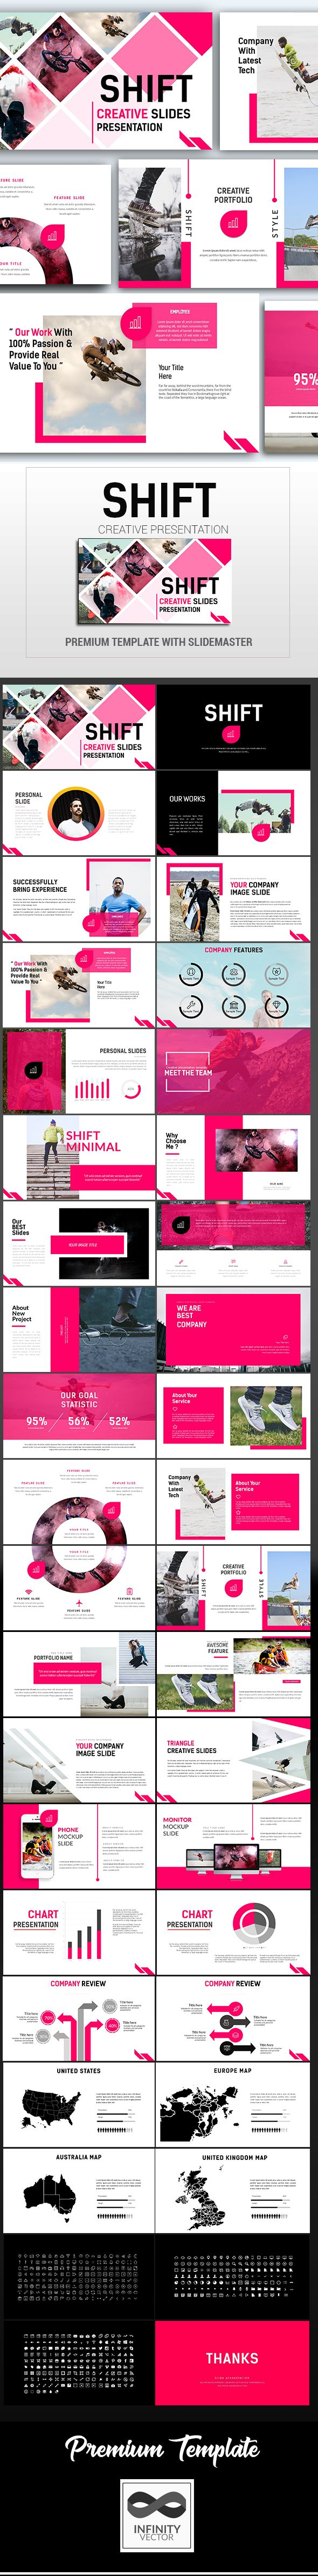 Shift - Creative PowerPoint Presentation Template